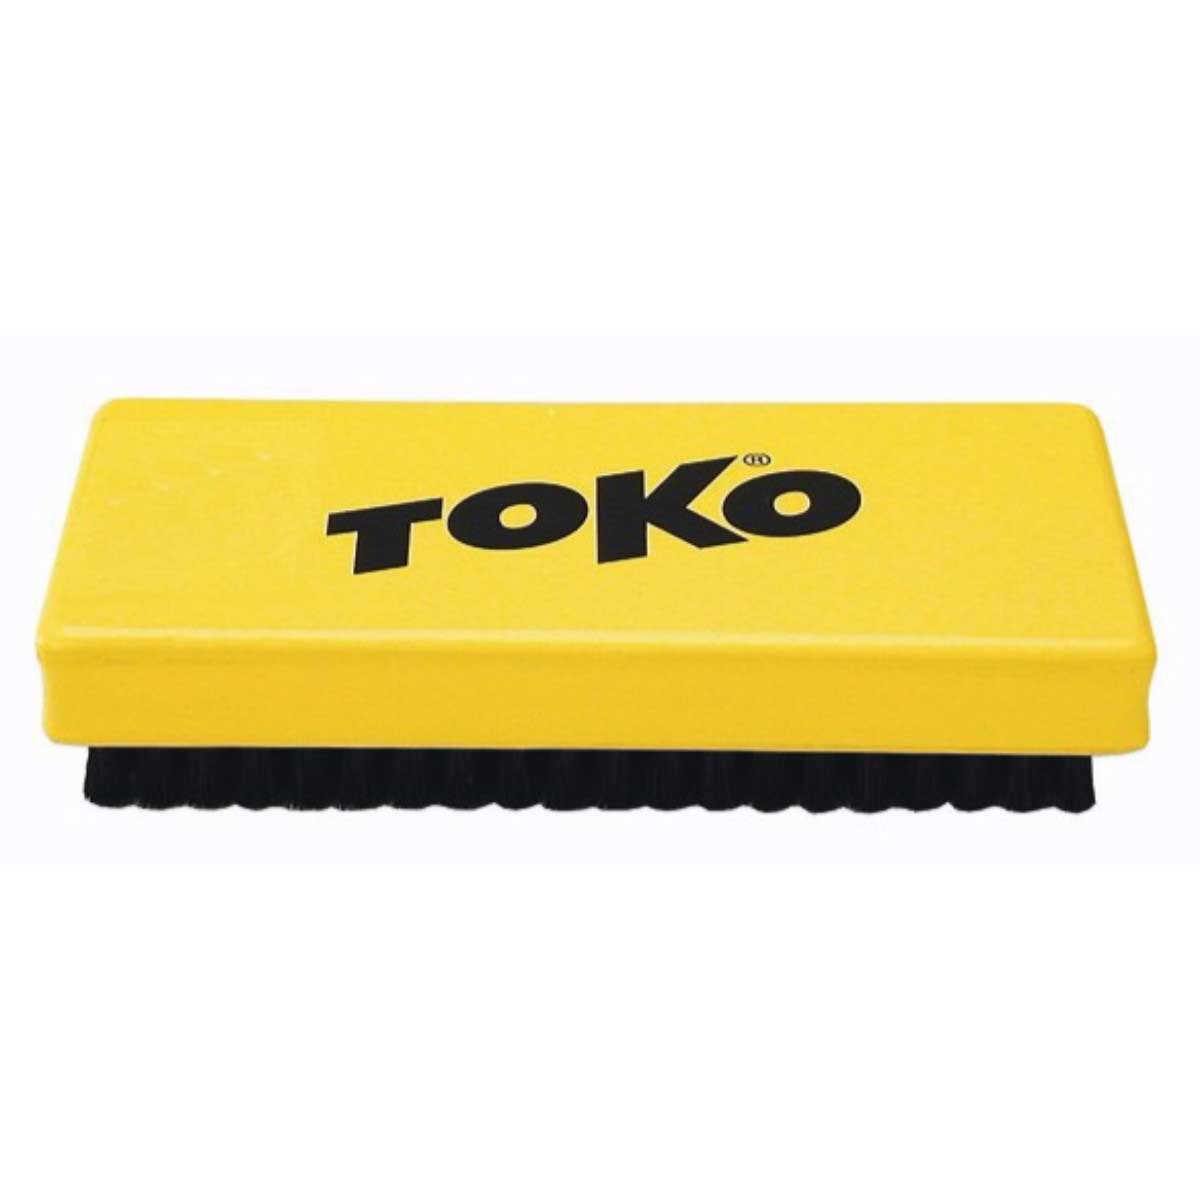 Toko Base Brush Horsehair in Yellow and Black